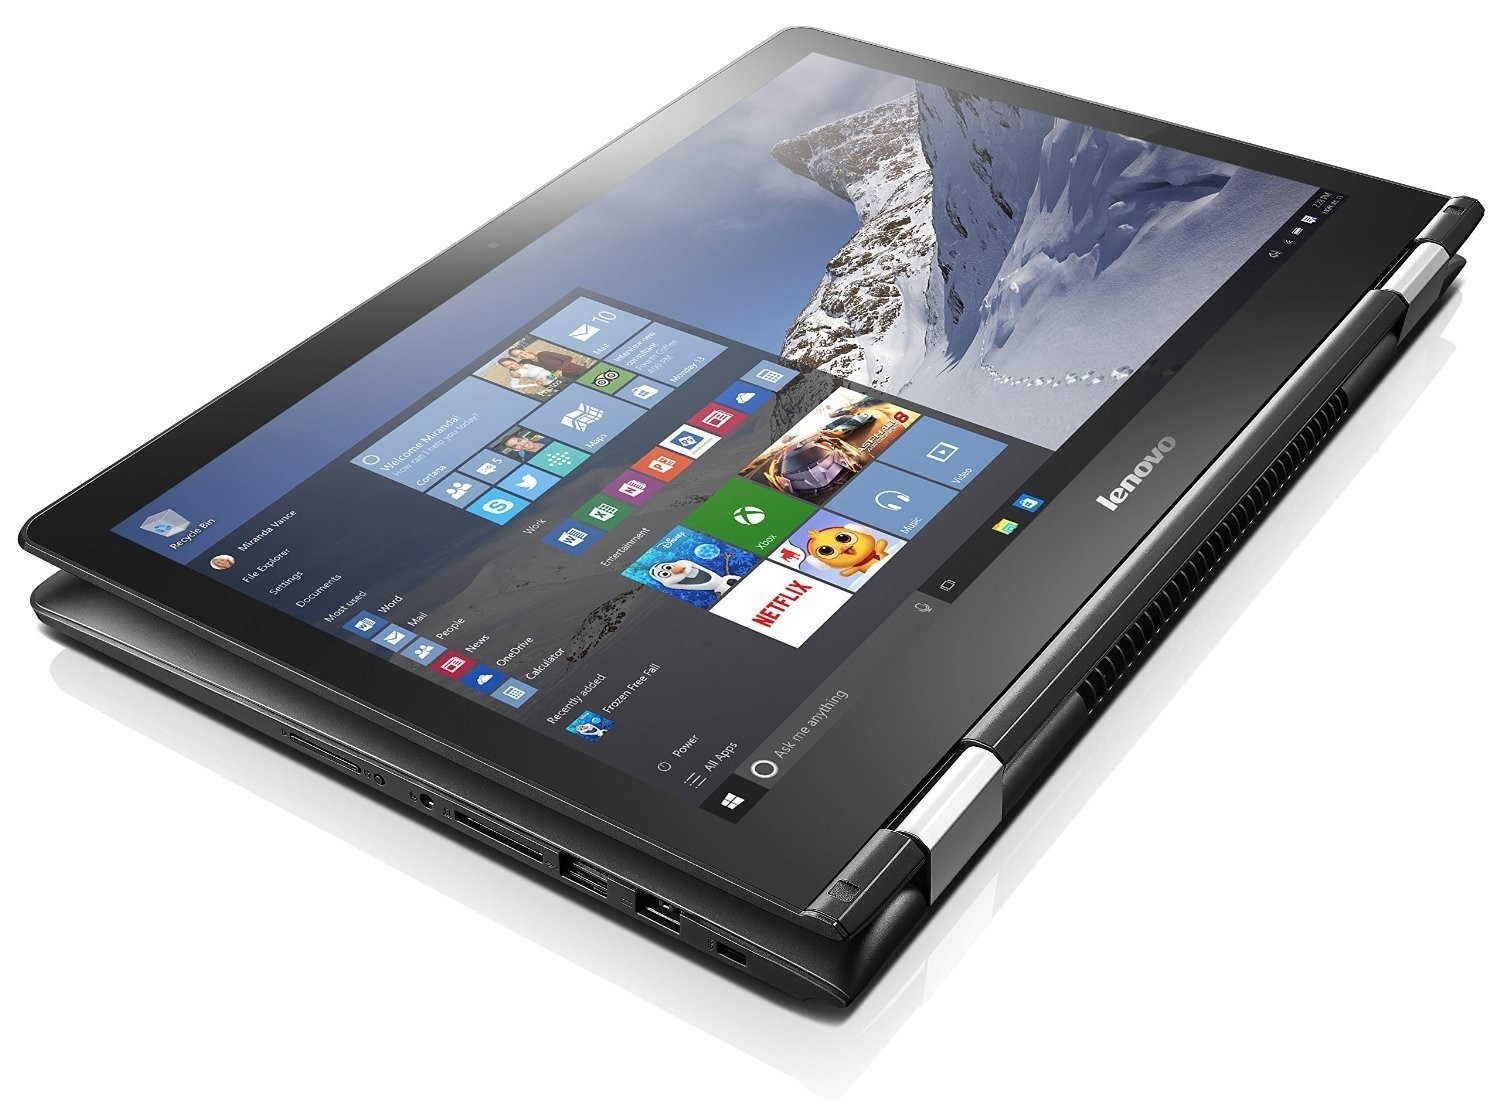 Lenovo FLEX 3 I7-6500U 8Gb 15.6in 1920x1080 TouchScreen 1Tb Nvidia GeForce 940M Win10 Home Negra